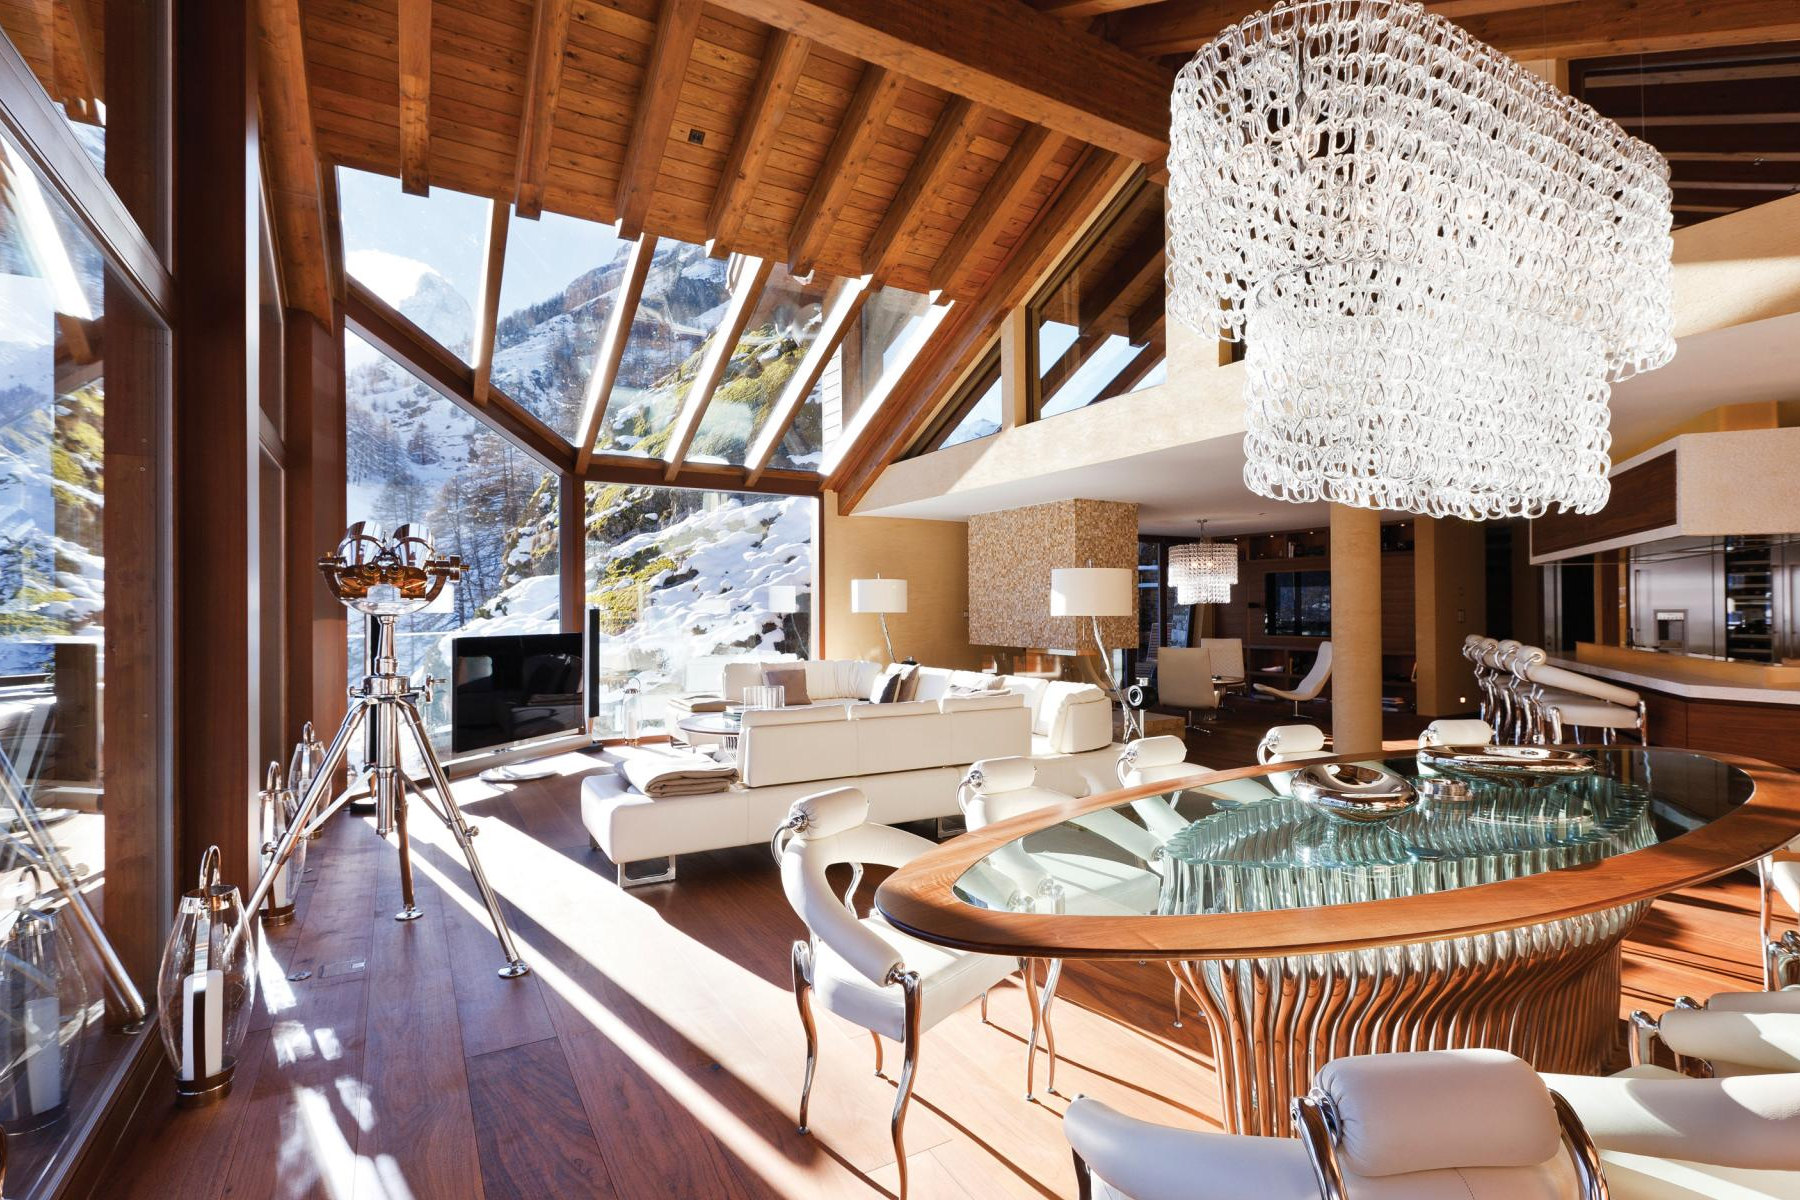 Ski Chalet Interior Design the best ski chalet interiors to inspire your apres-ski